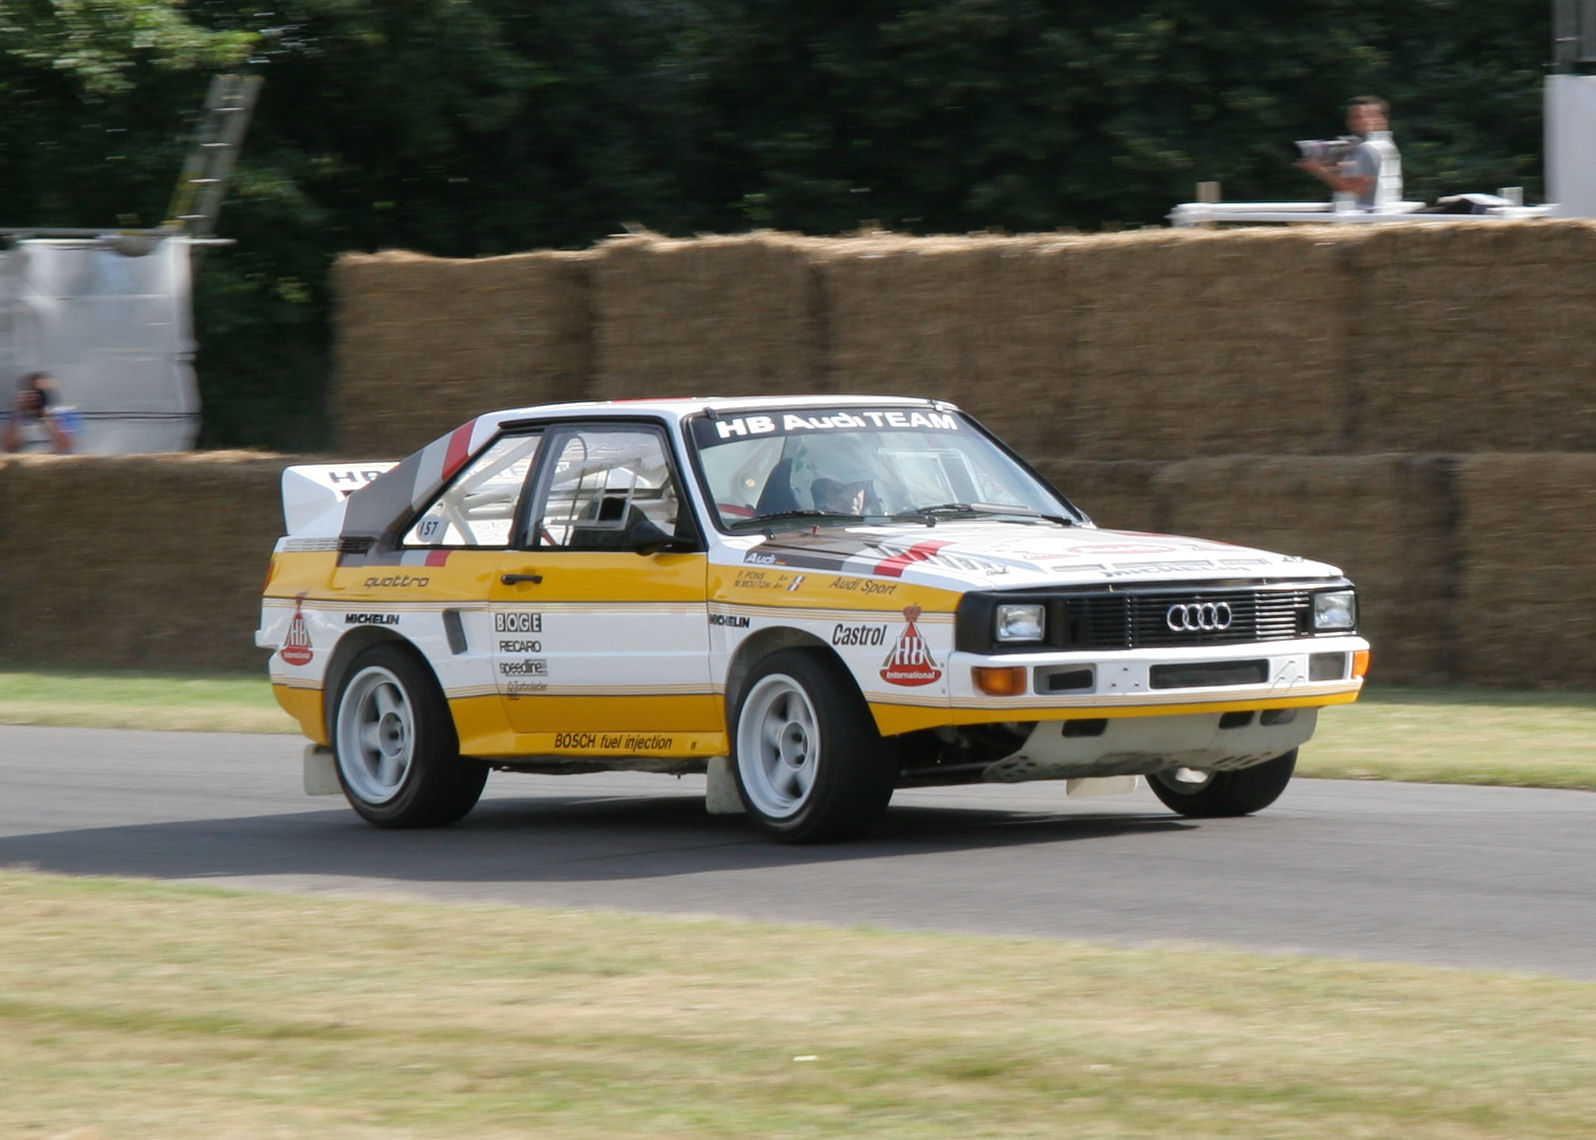 Mich le Mouton's Audi Sport Quattro at the 2006 Goodwood Festival of Speed.